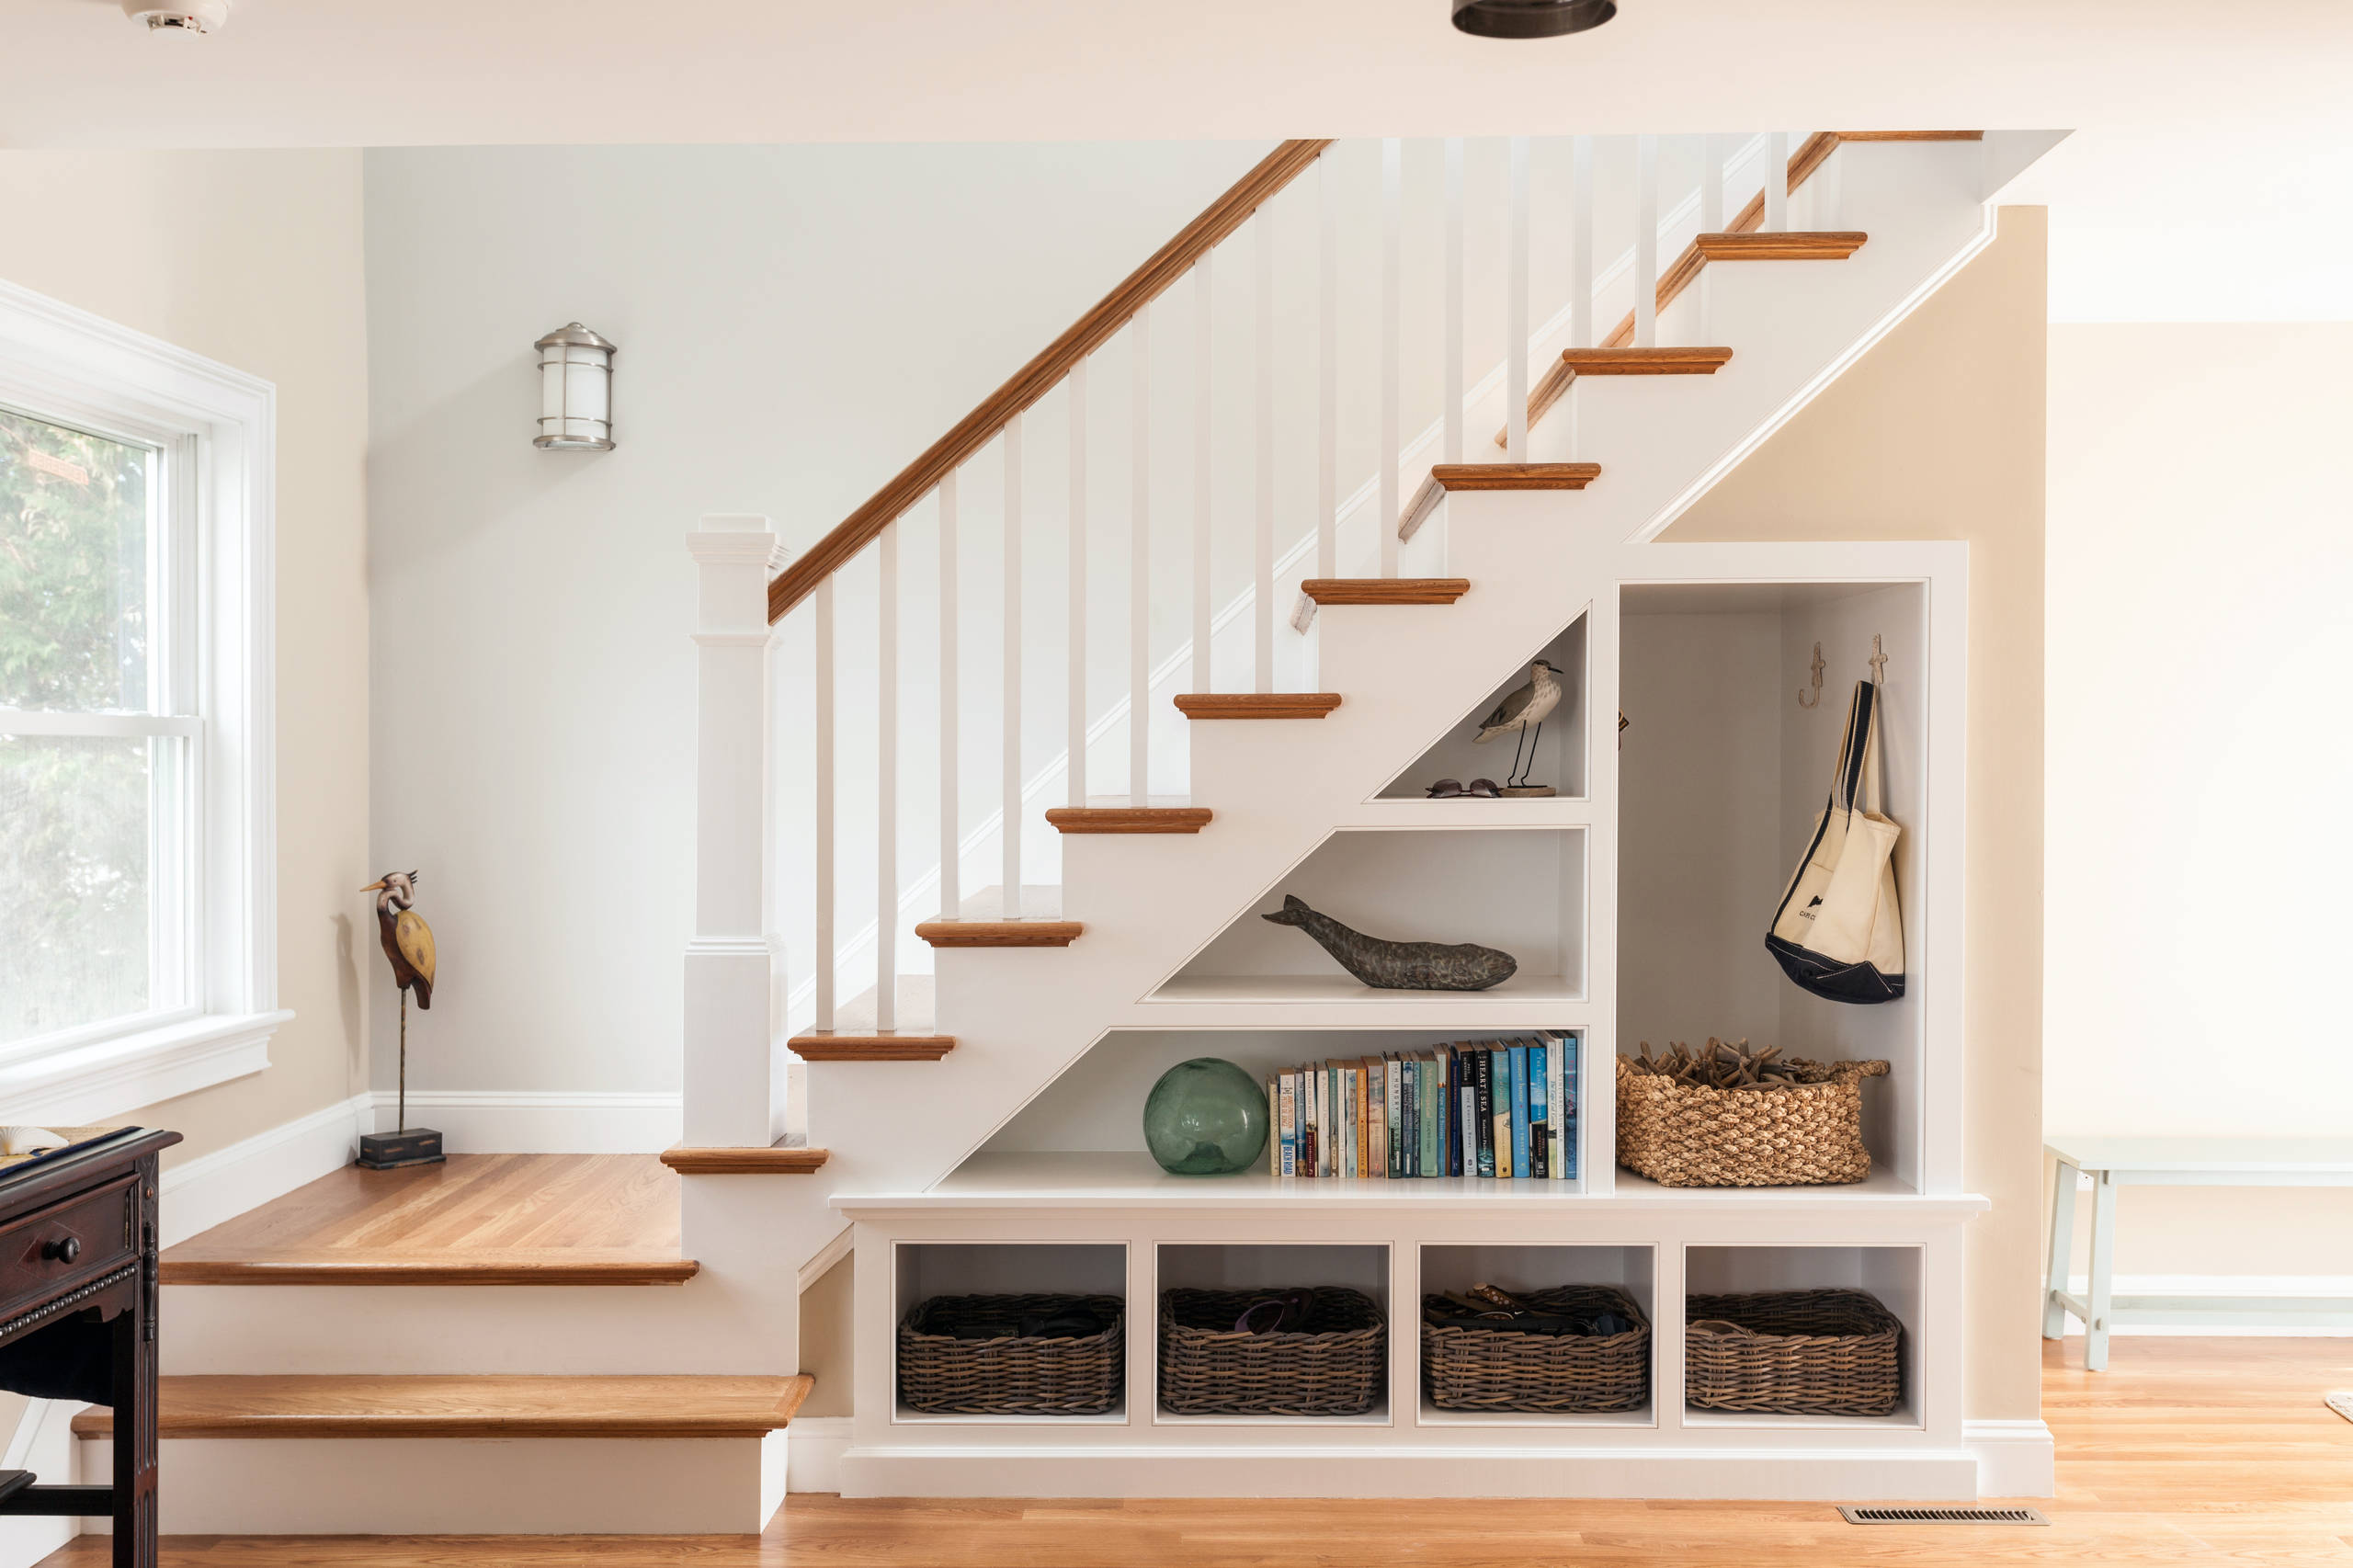 75 Beautiful Staircase Pictures Ideas September 2020 Houzz